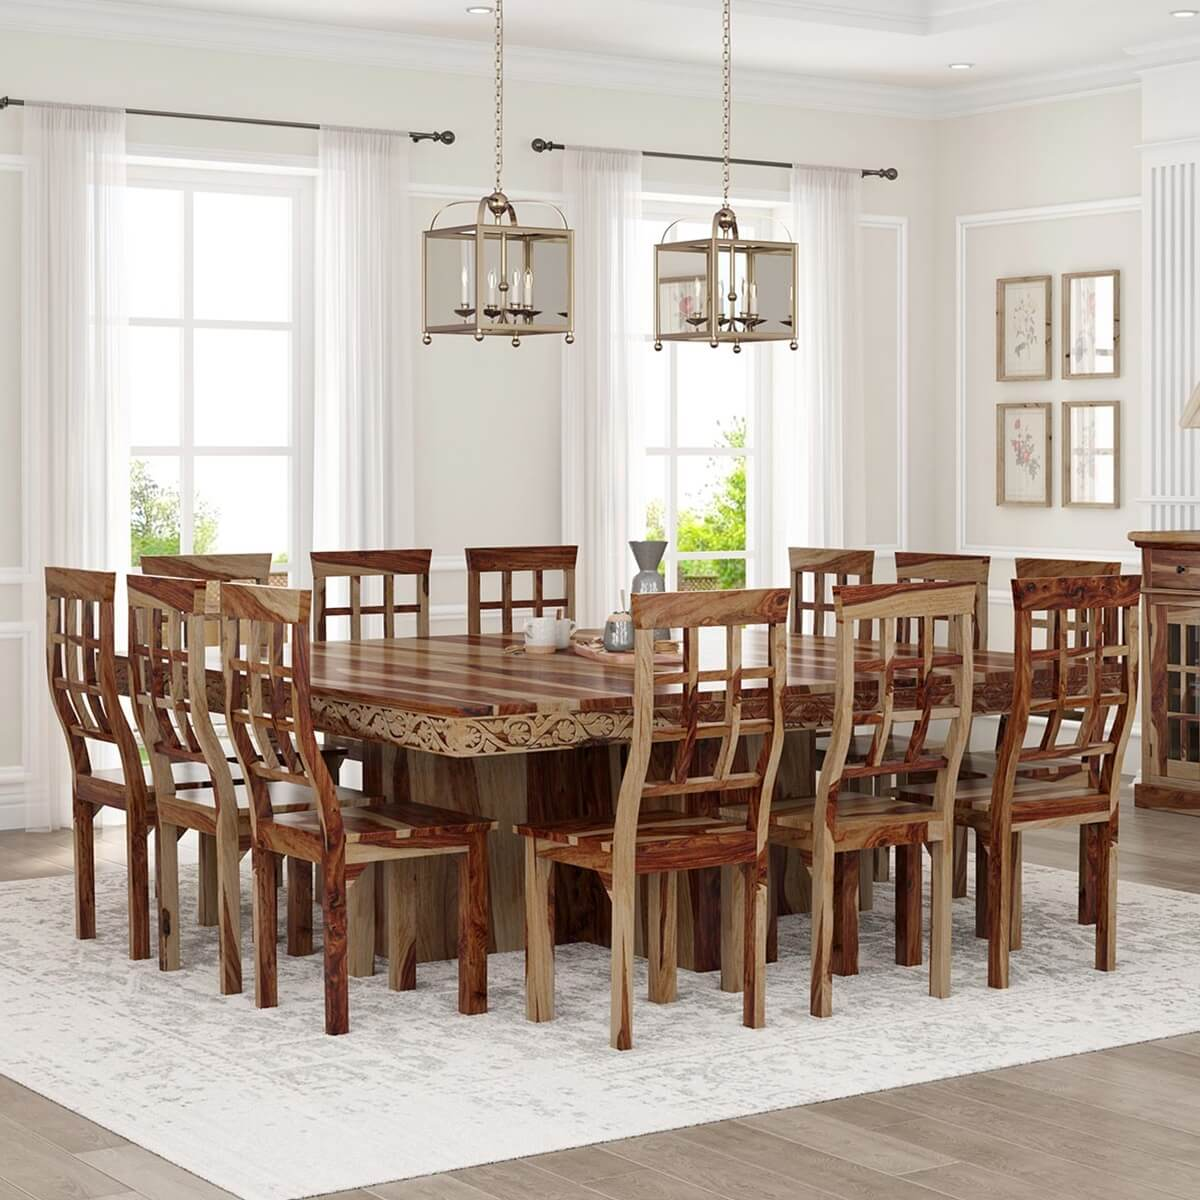 Dallas ranch large square dining room table and chair set for Dining room tables 12